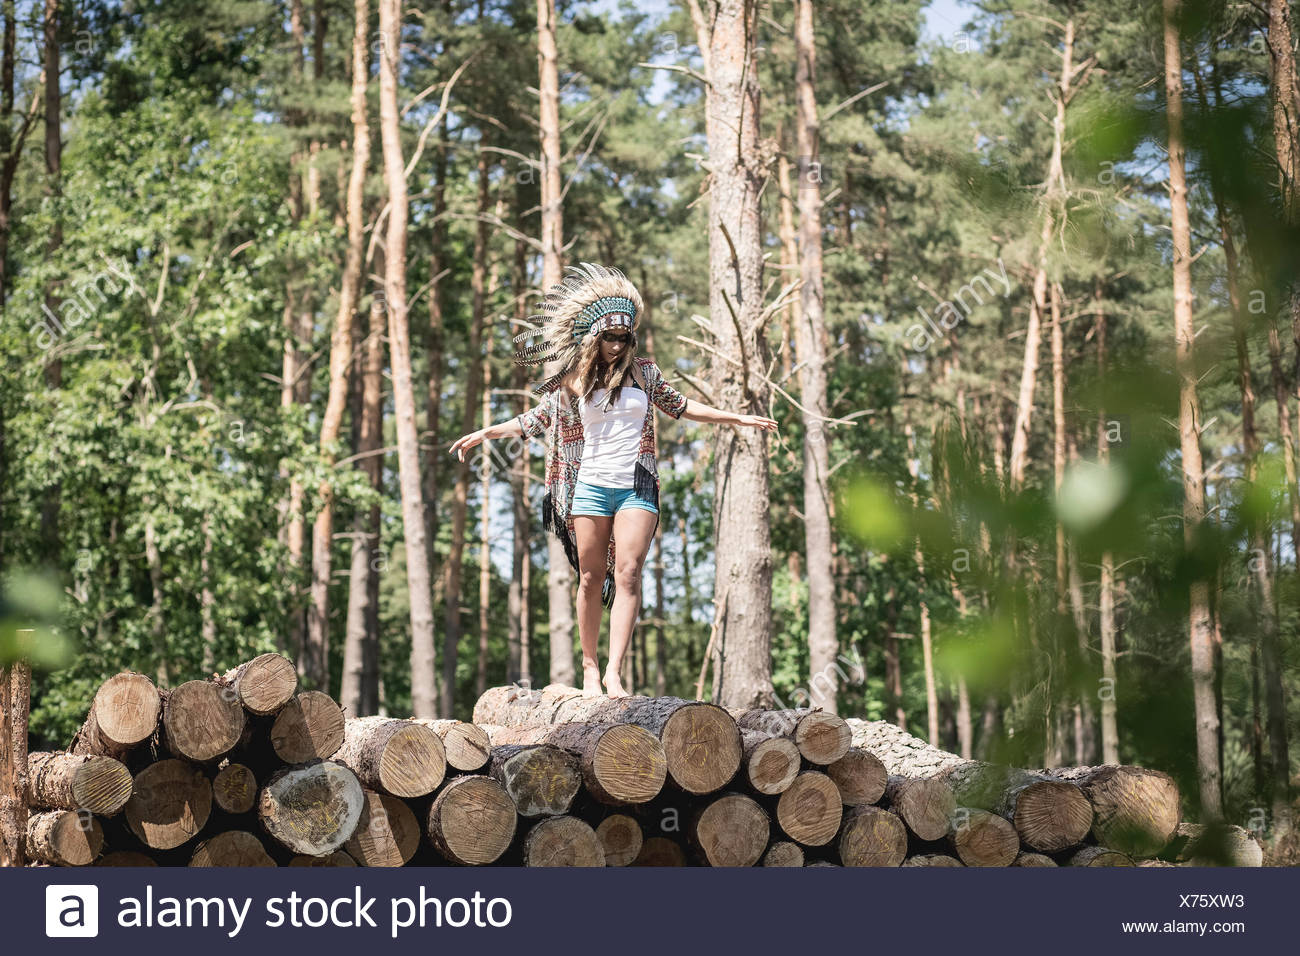 Young woman masquerade as an Indian balancing on stack of wood - Stock Image